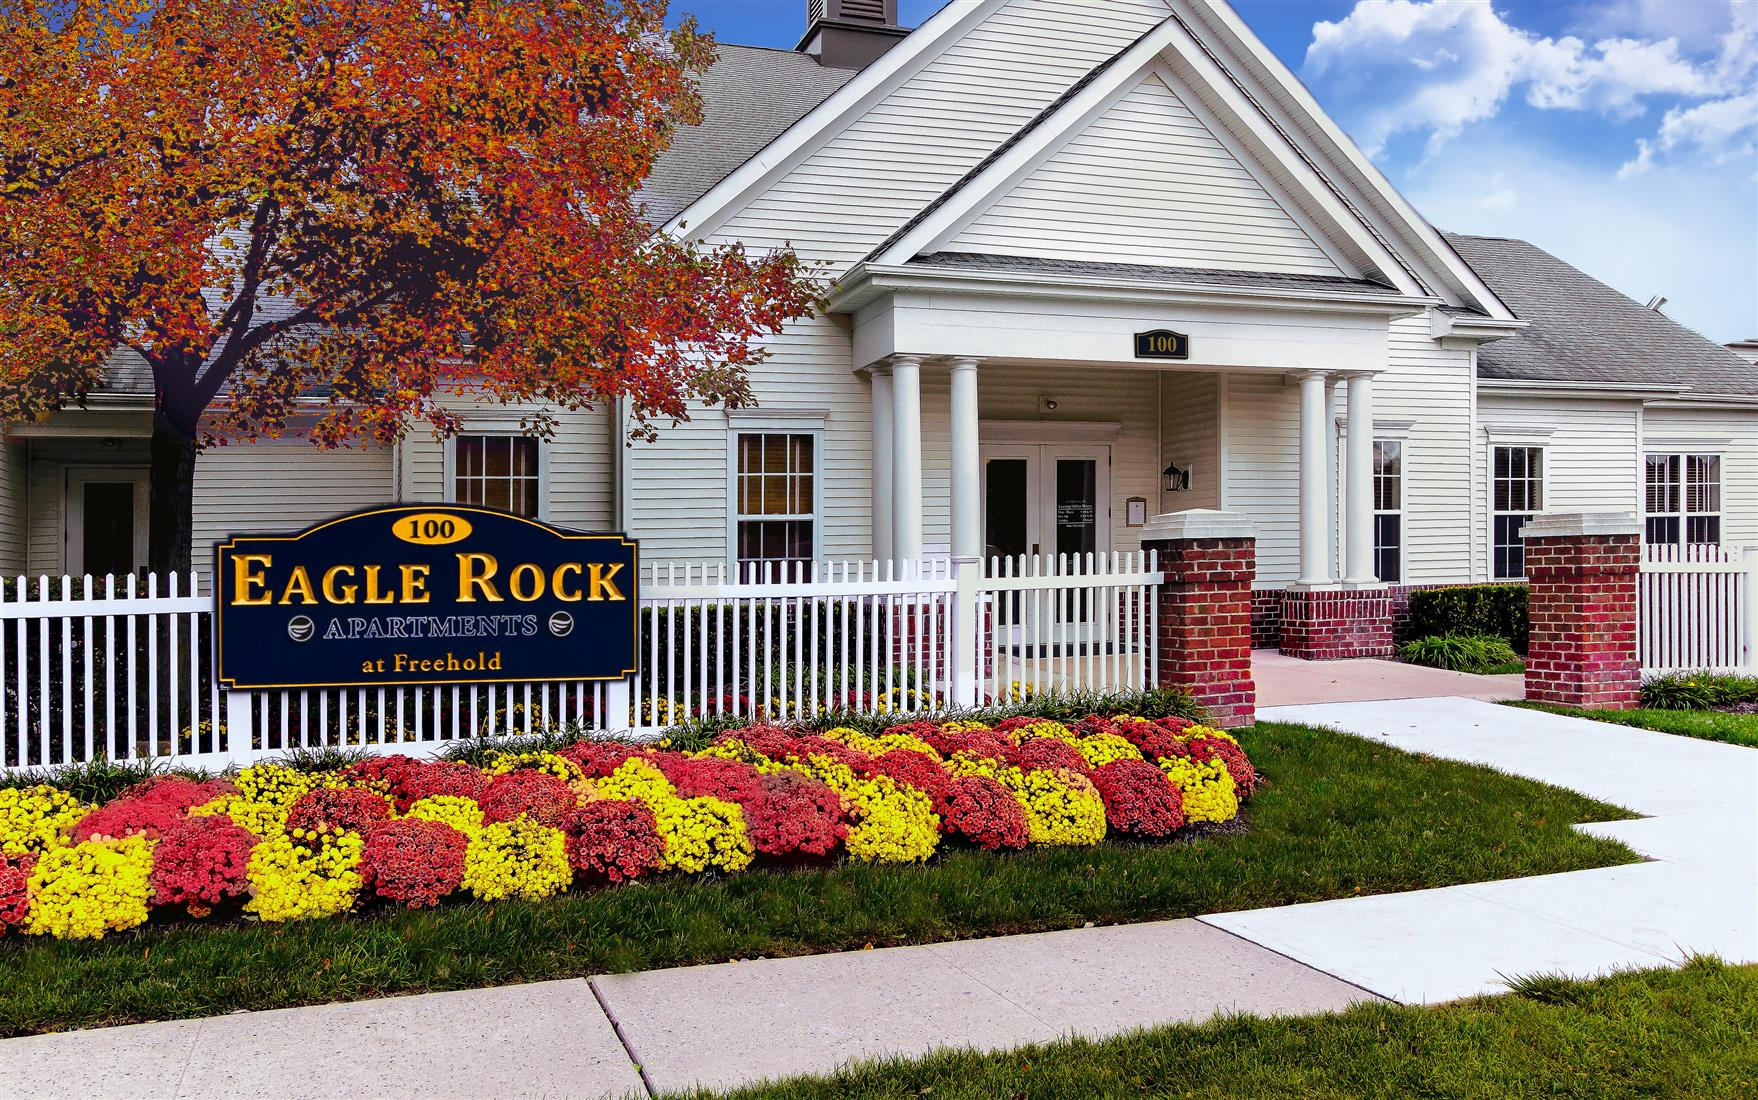 Eagle Rock Apartments at Freehold - Freehold, NJ | Eagle Rock Apartments